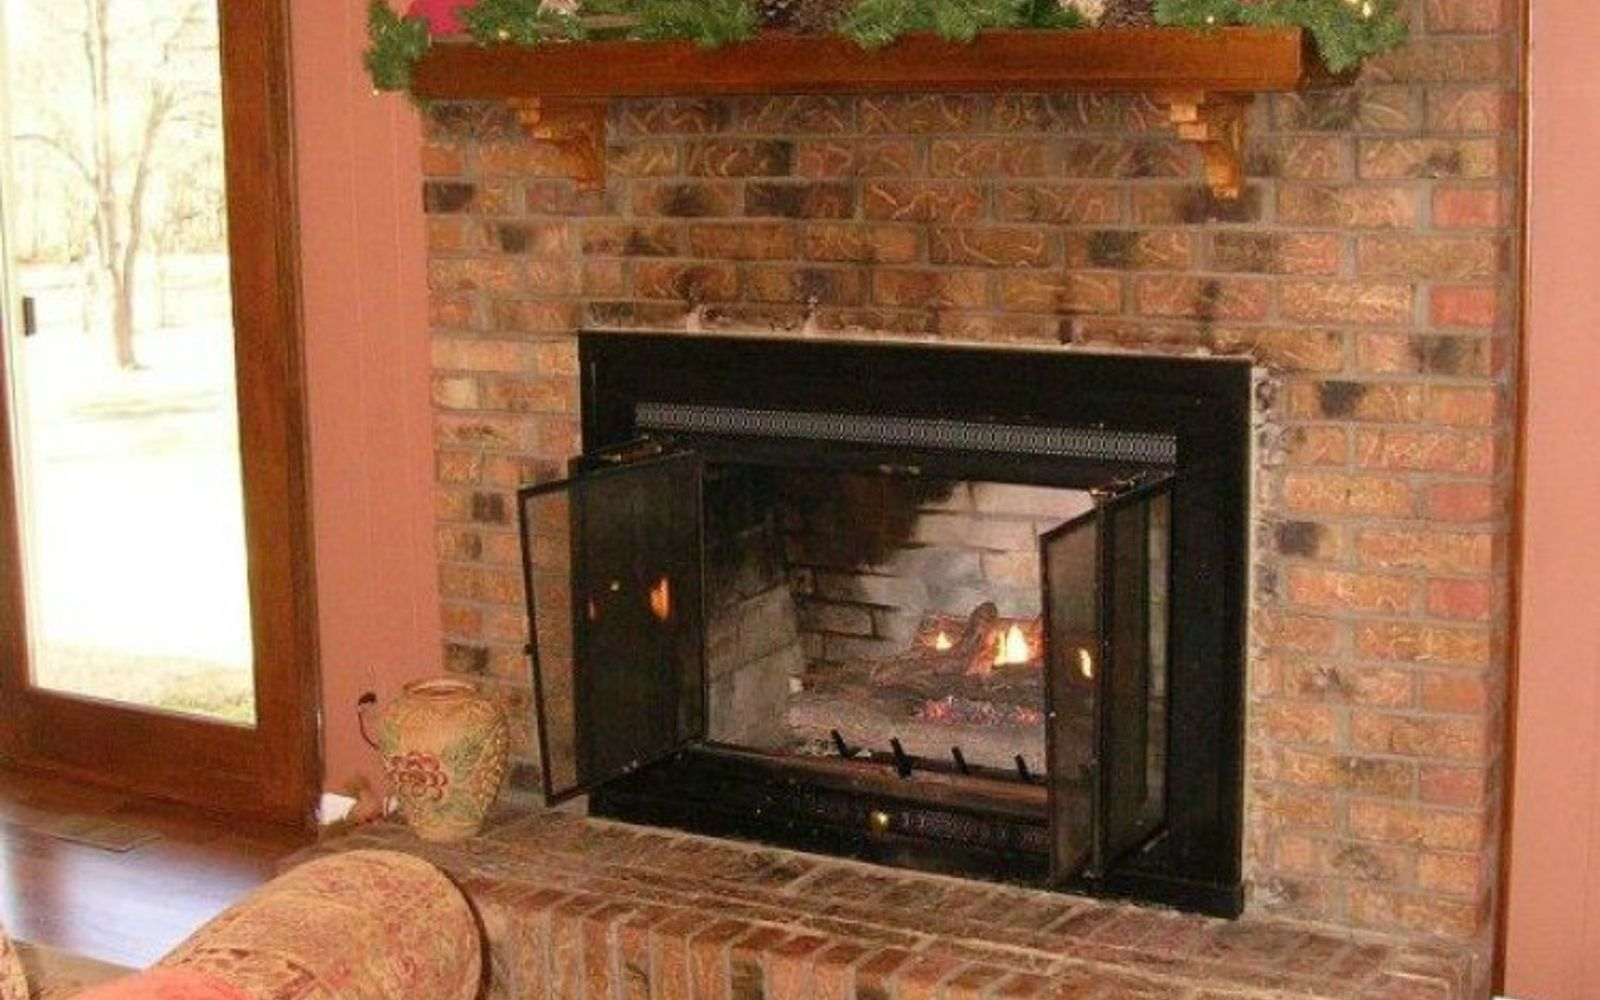 s 10 gorgeous ways to transform a brick fireplace without replacing it, concrete masonry, fireplaces mantels, The problem You want a farmhouse look